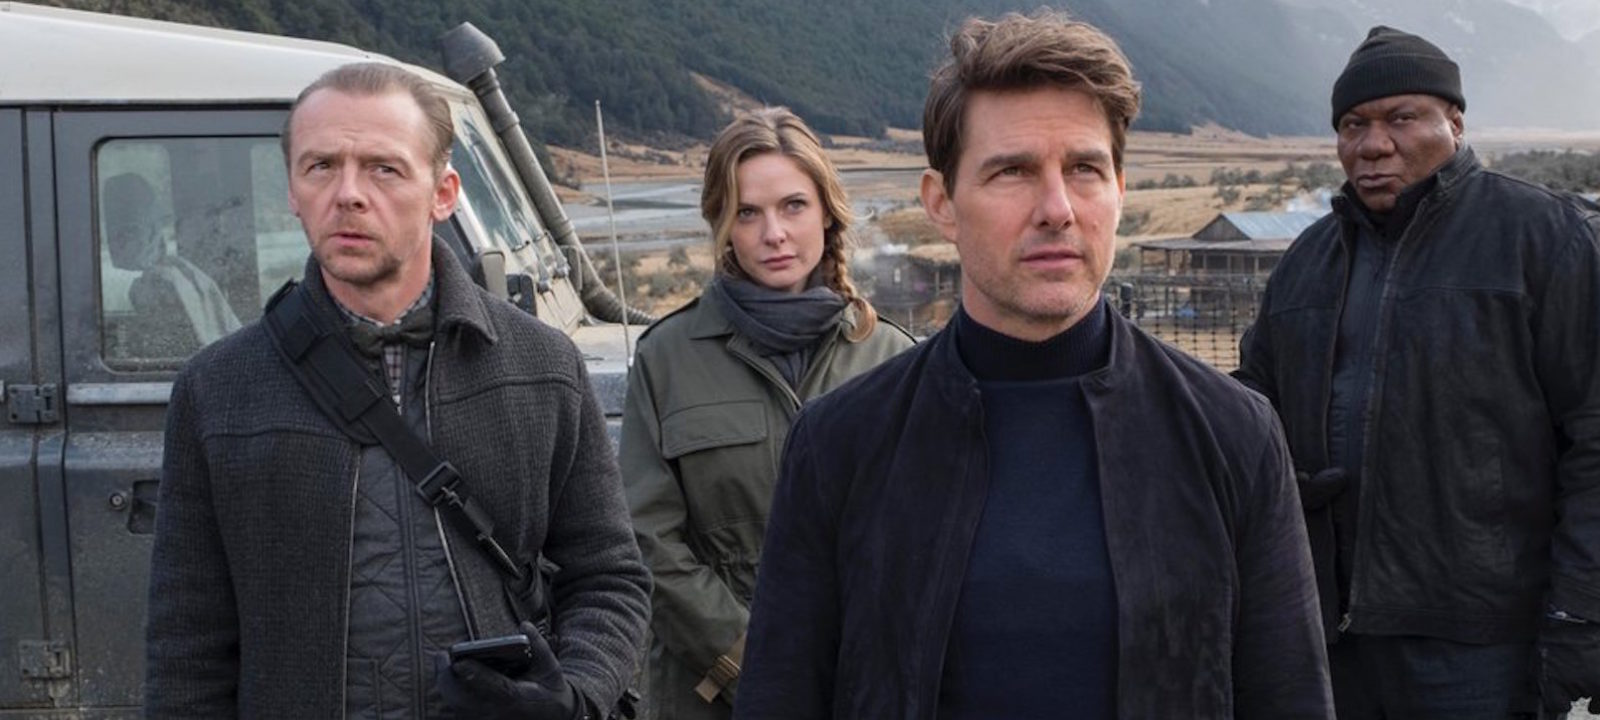 anglo_2000x1125_missionimpossible6_castphoto